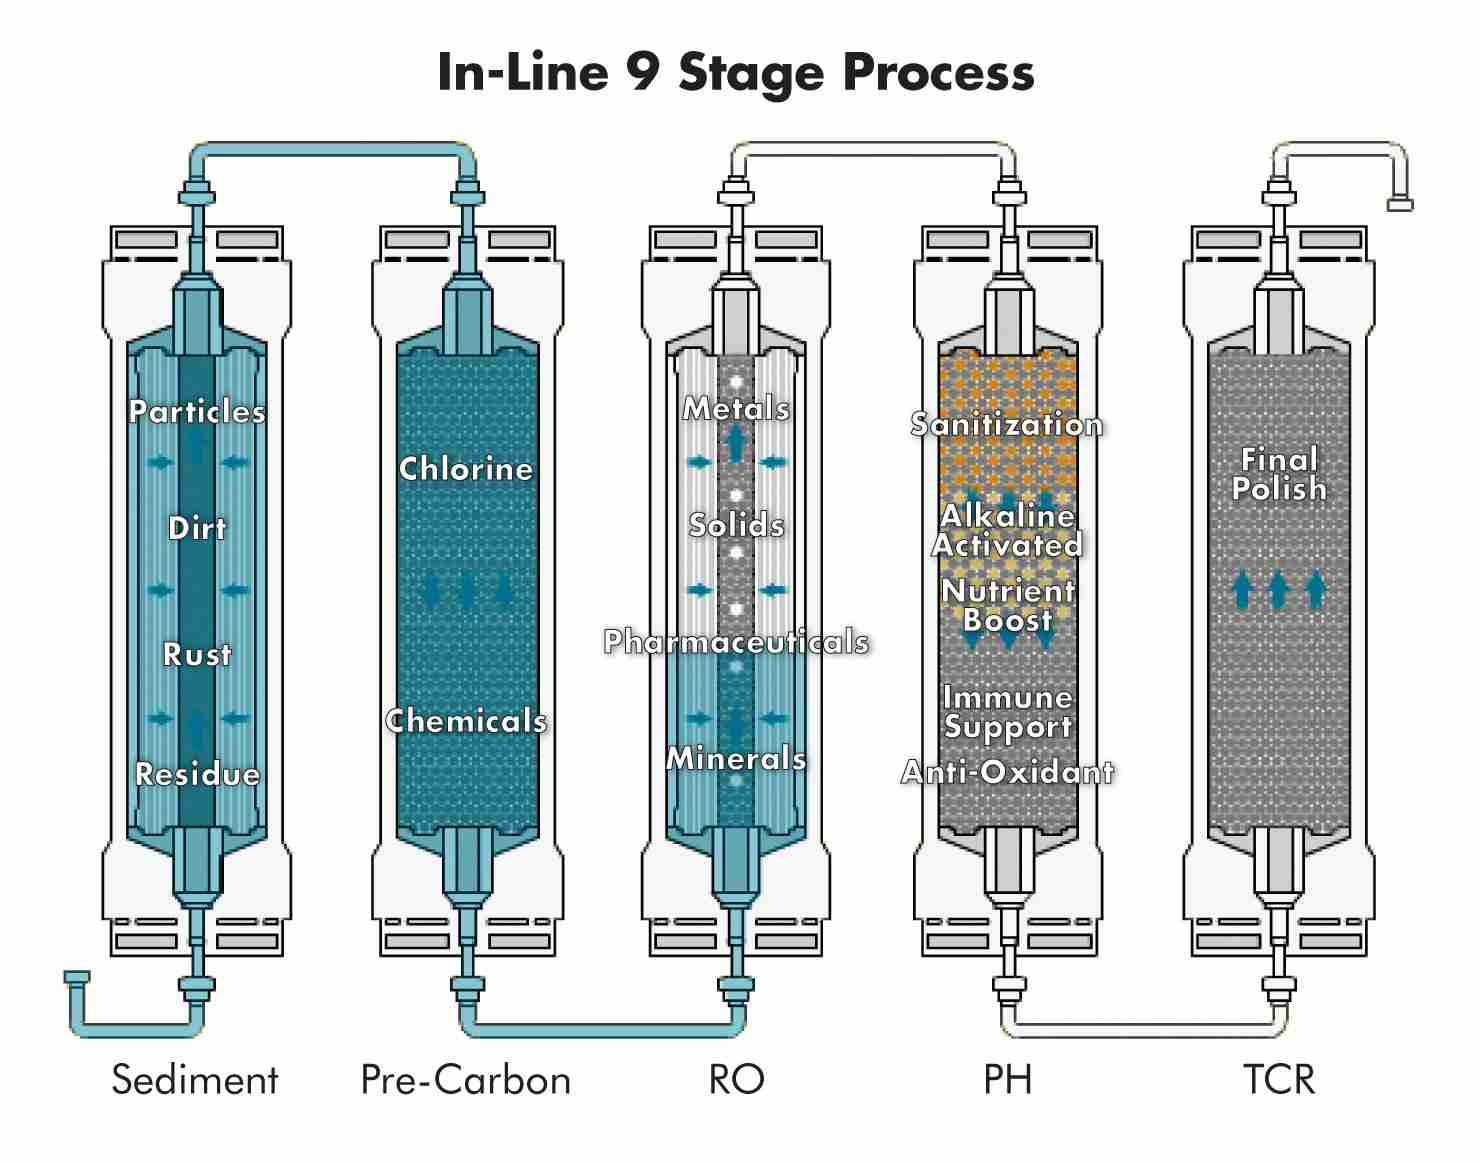 In-line 9 Stage Process